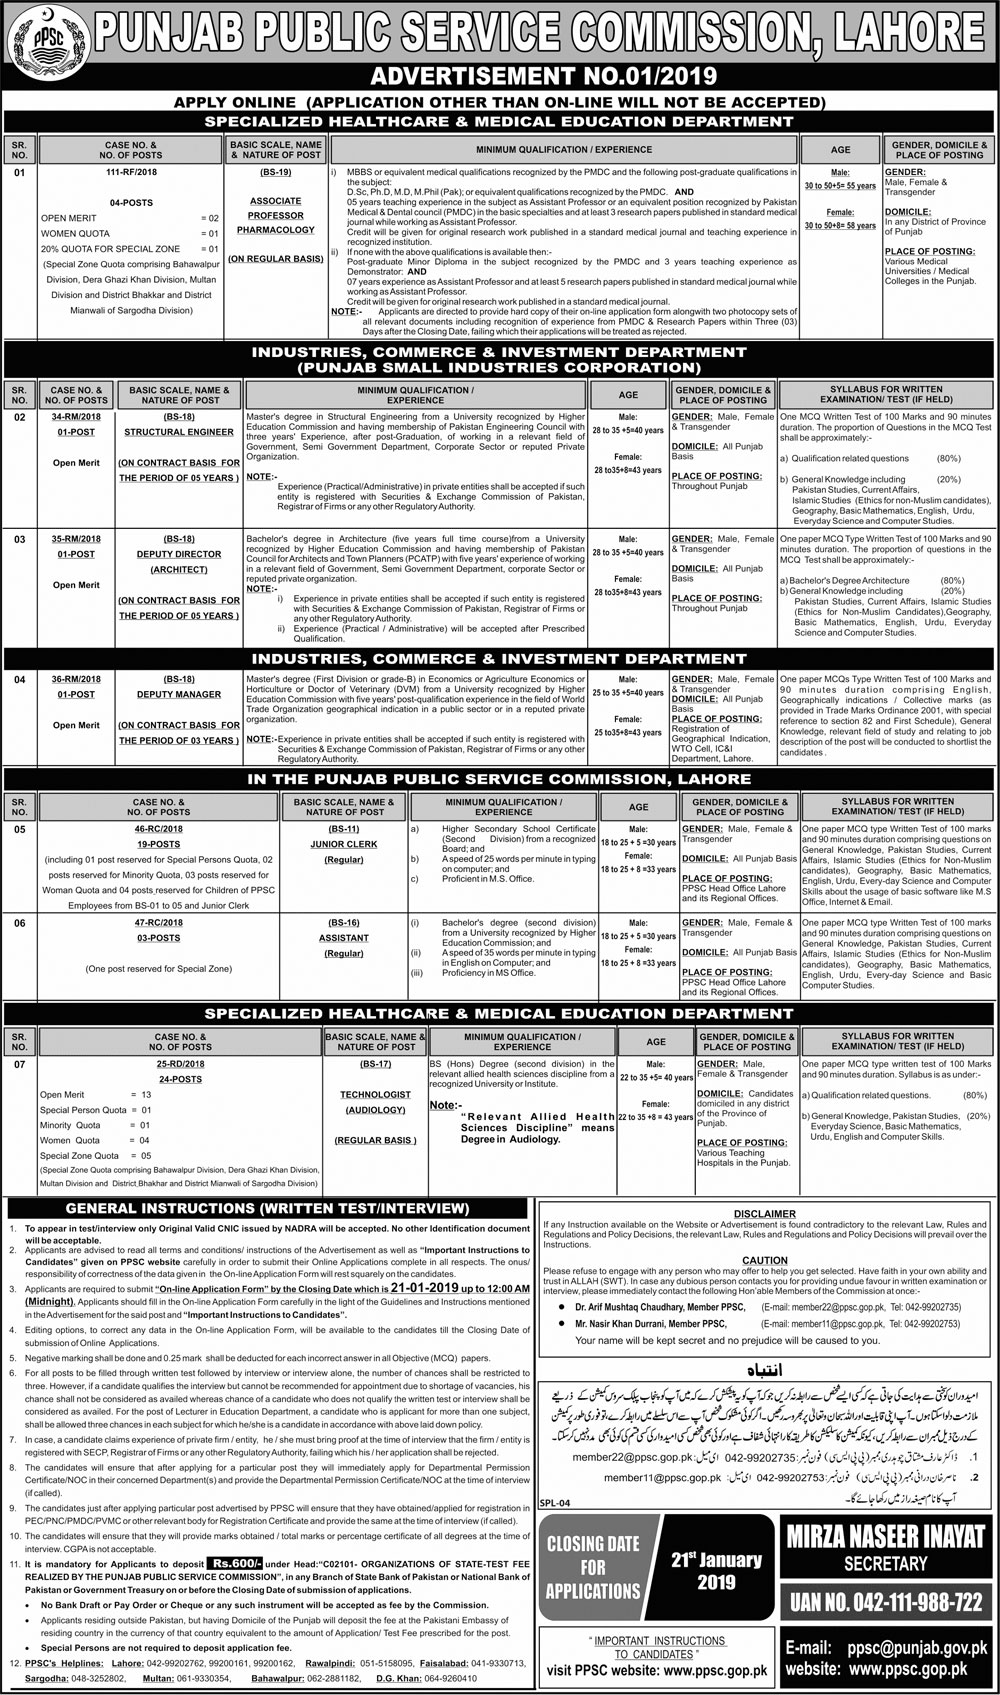 PPSC Jobs 2019 Punjab Public Service Commission Application Form Online